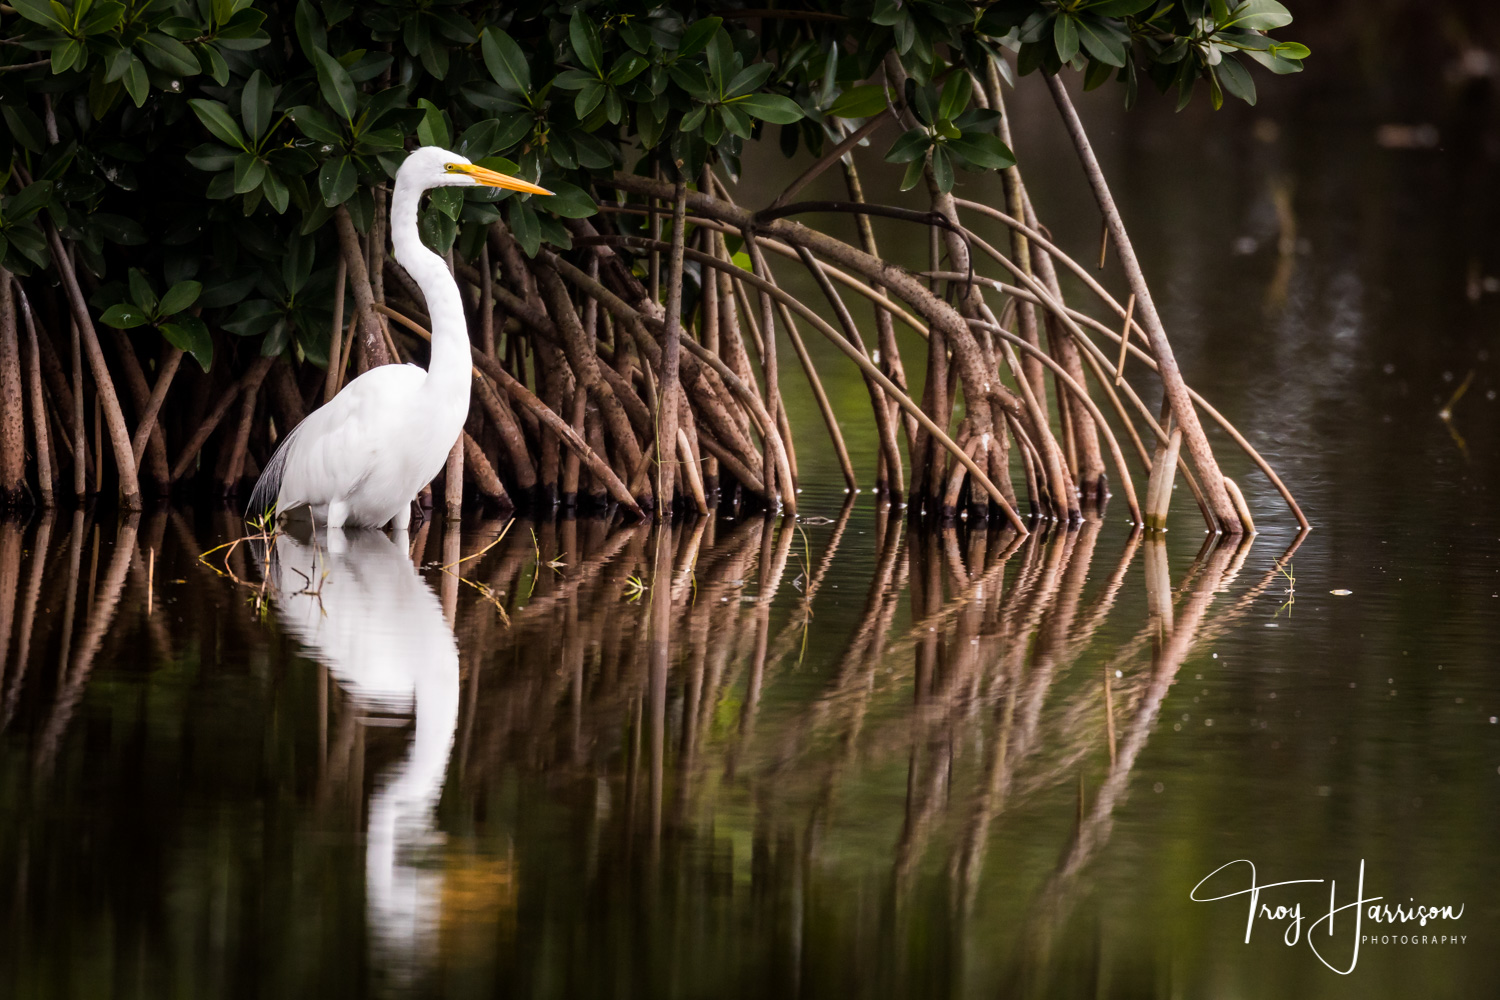 1 - Great Egret, Everglades, Nov. 2018, img 1429.jpg